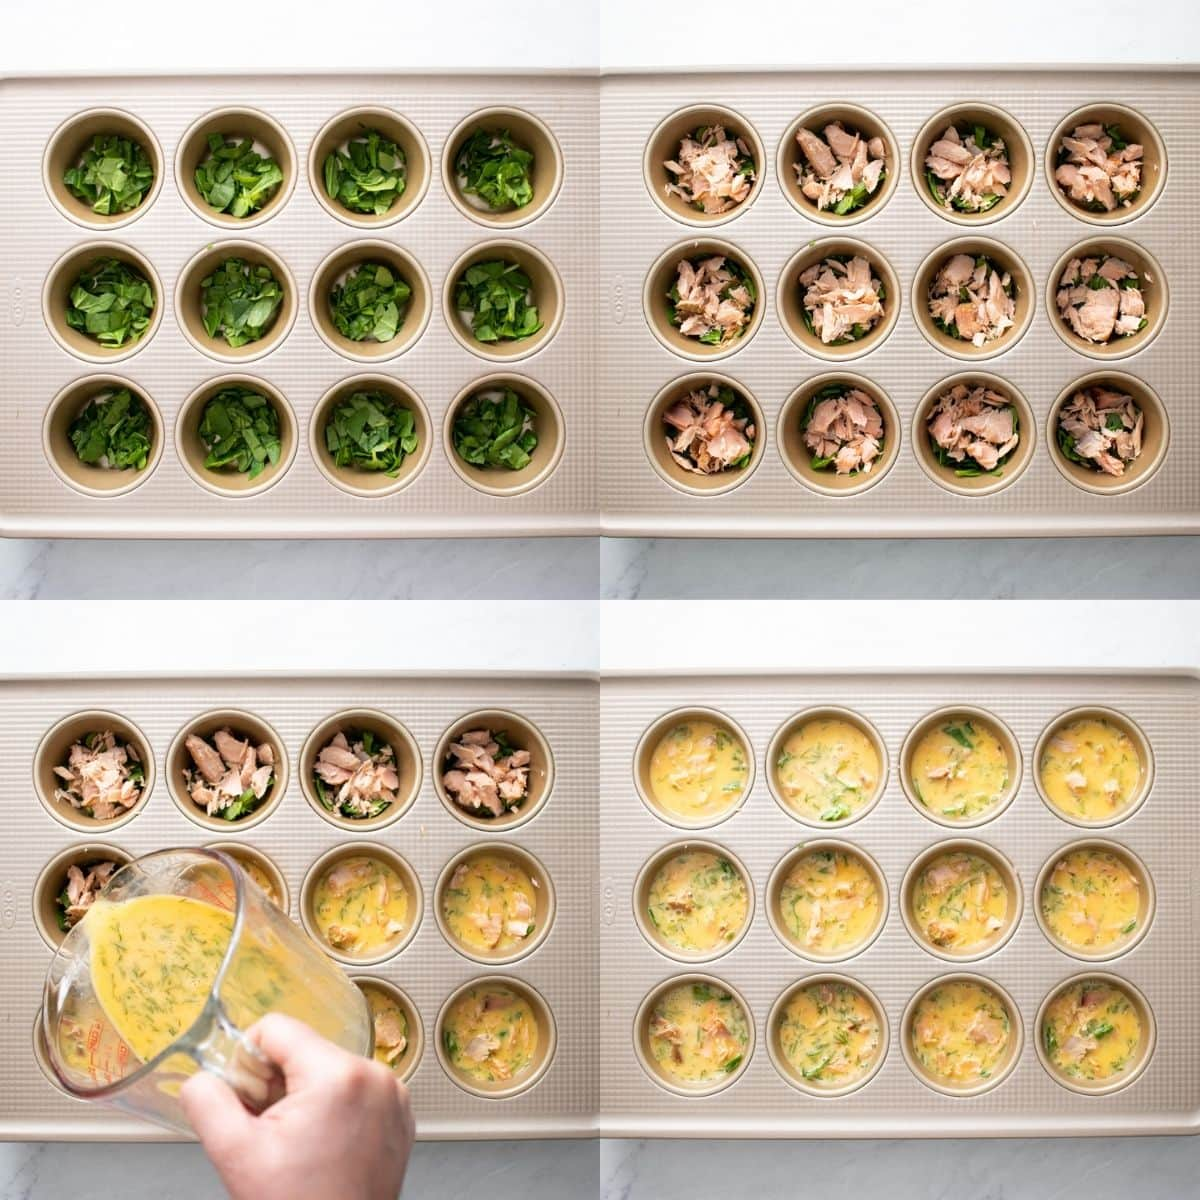 Four images depicting the assembly of these egg muffins. The first shows chopped spinach evenly divided into a muffin tin. The second image shows smoked salmon pieces added on top of the spinach. The third image shows a whisked egg mixture being poured into the muffin tin cups. The fourth images shows the egg mixture is evenly divided into all of the muffin tin cups.